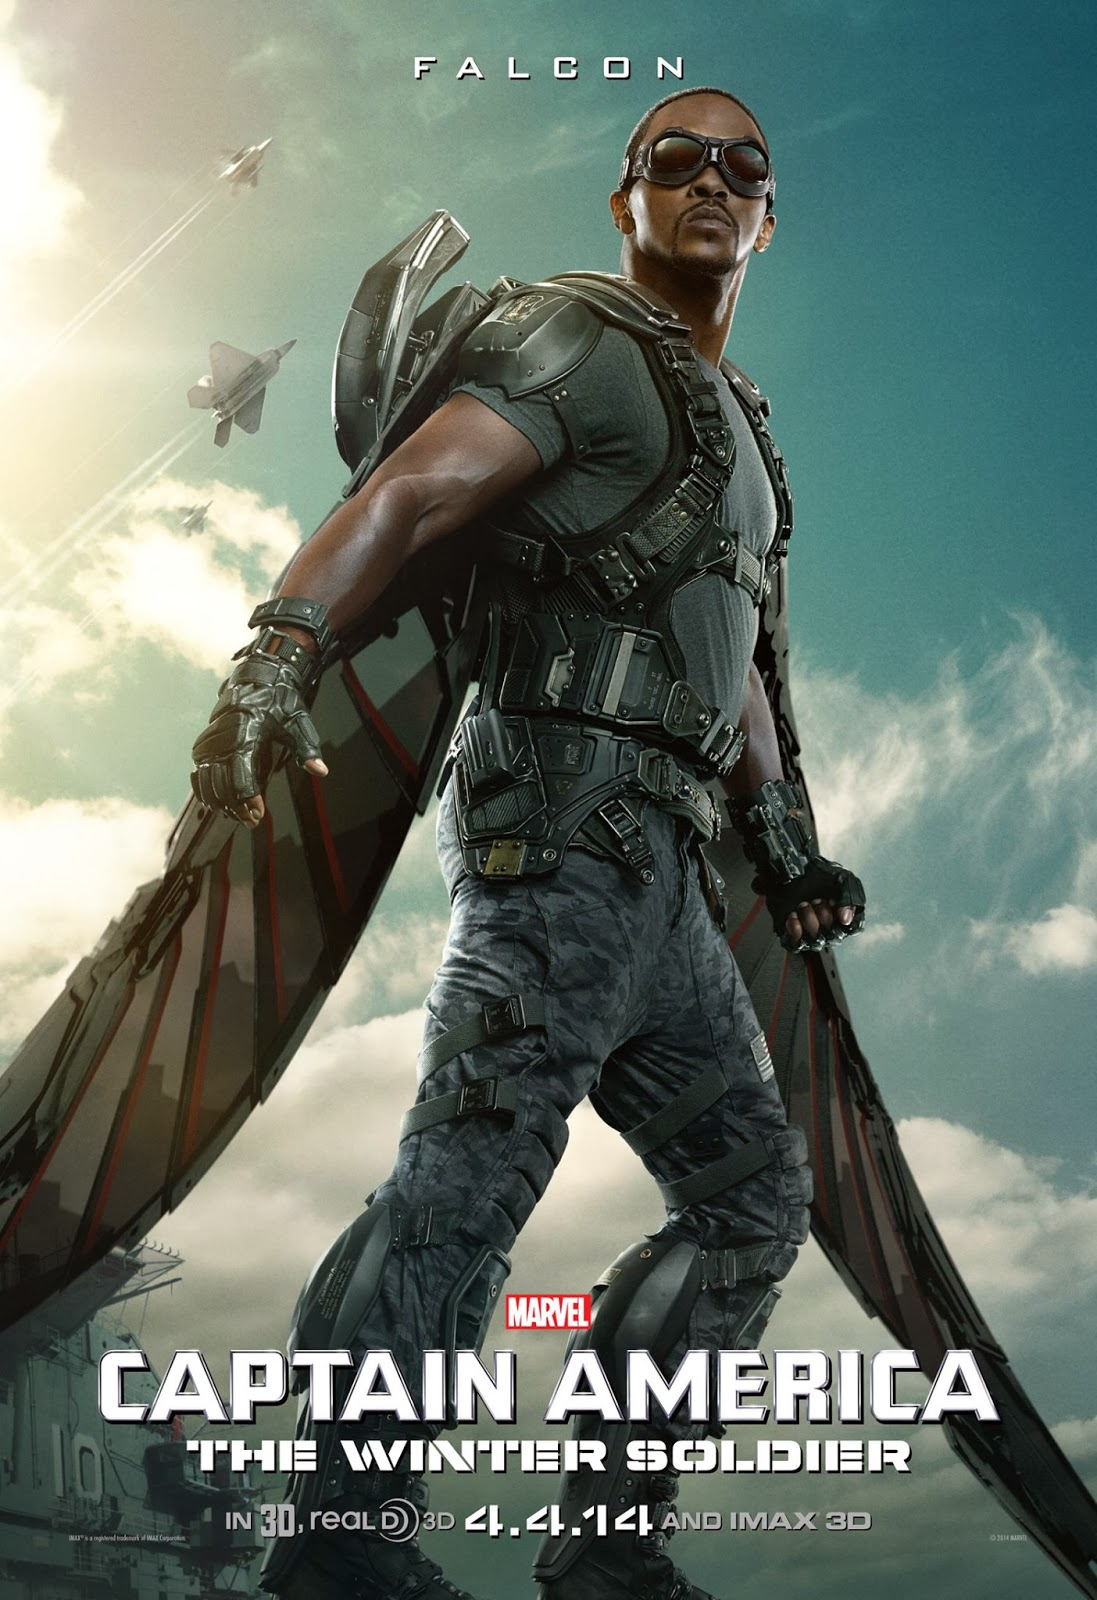 Captain America The Winter Soldier,Falcon,poster